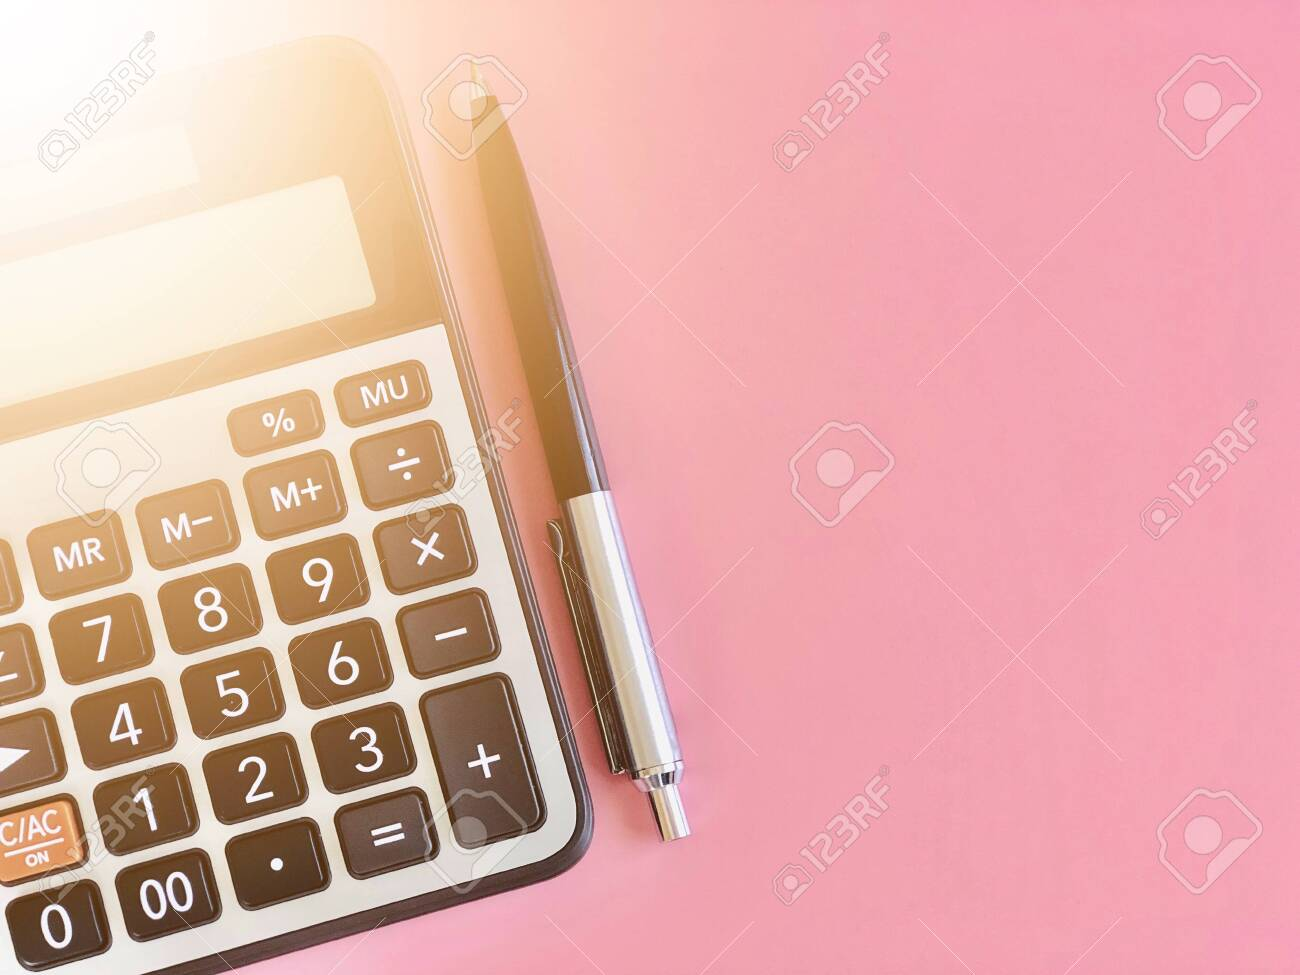 Business, finance, savings money, investment, taxes, money planning or accounting concept : Top view or flat lay of calculator and pen on pink background with copy space ready for adding or mock up - 134868456